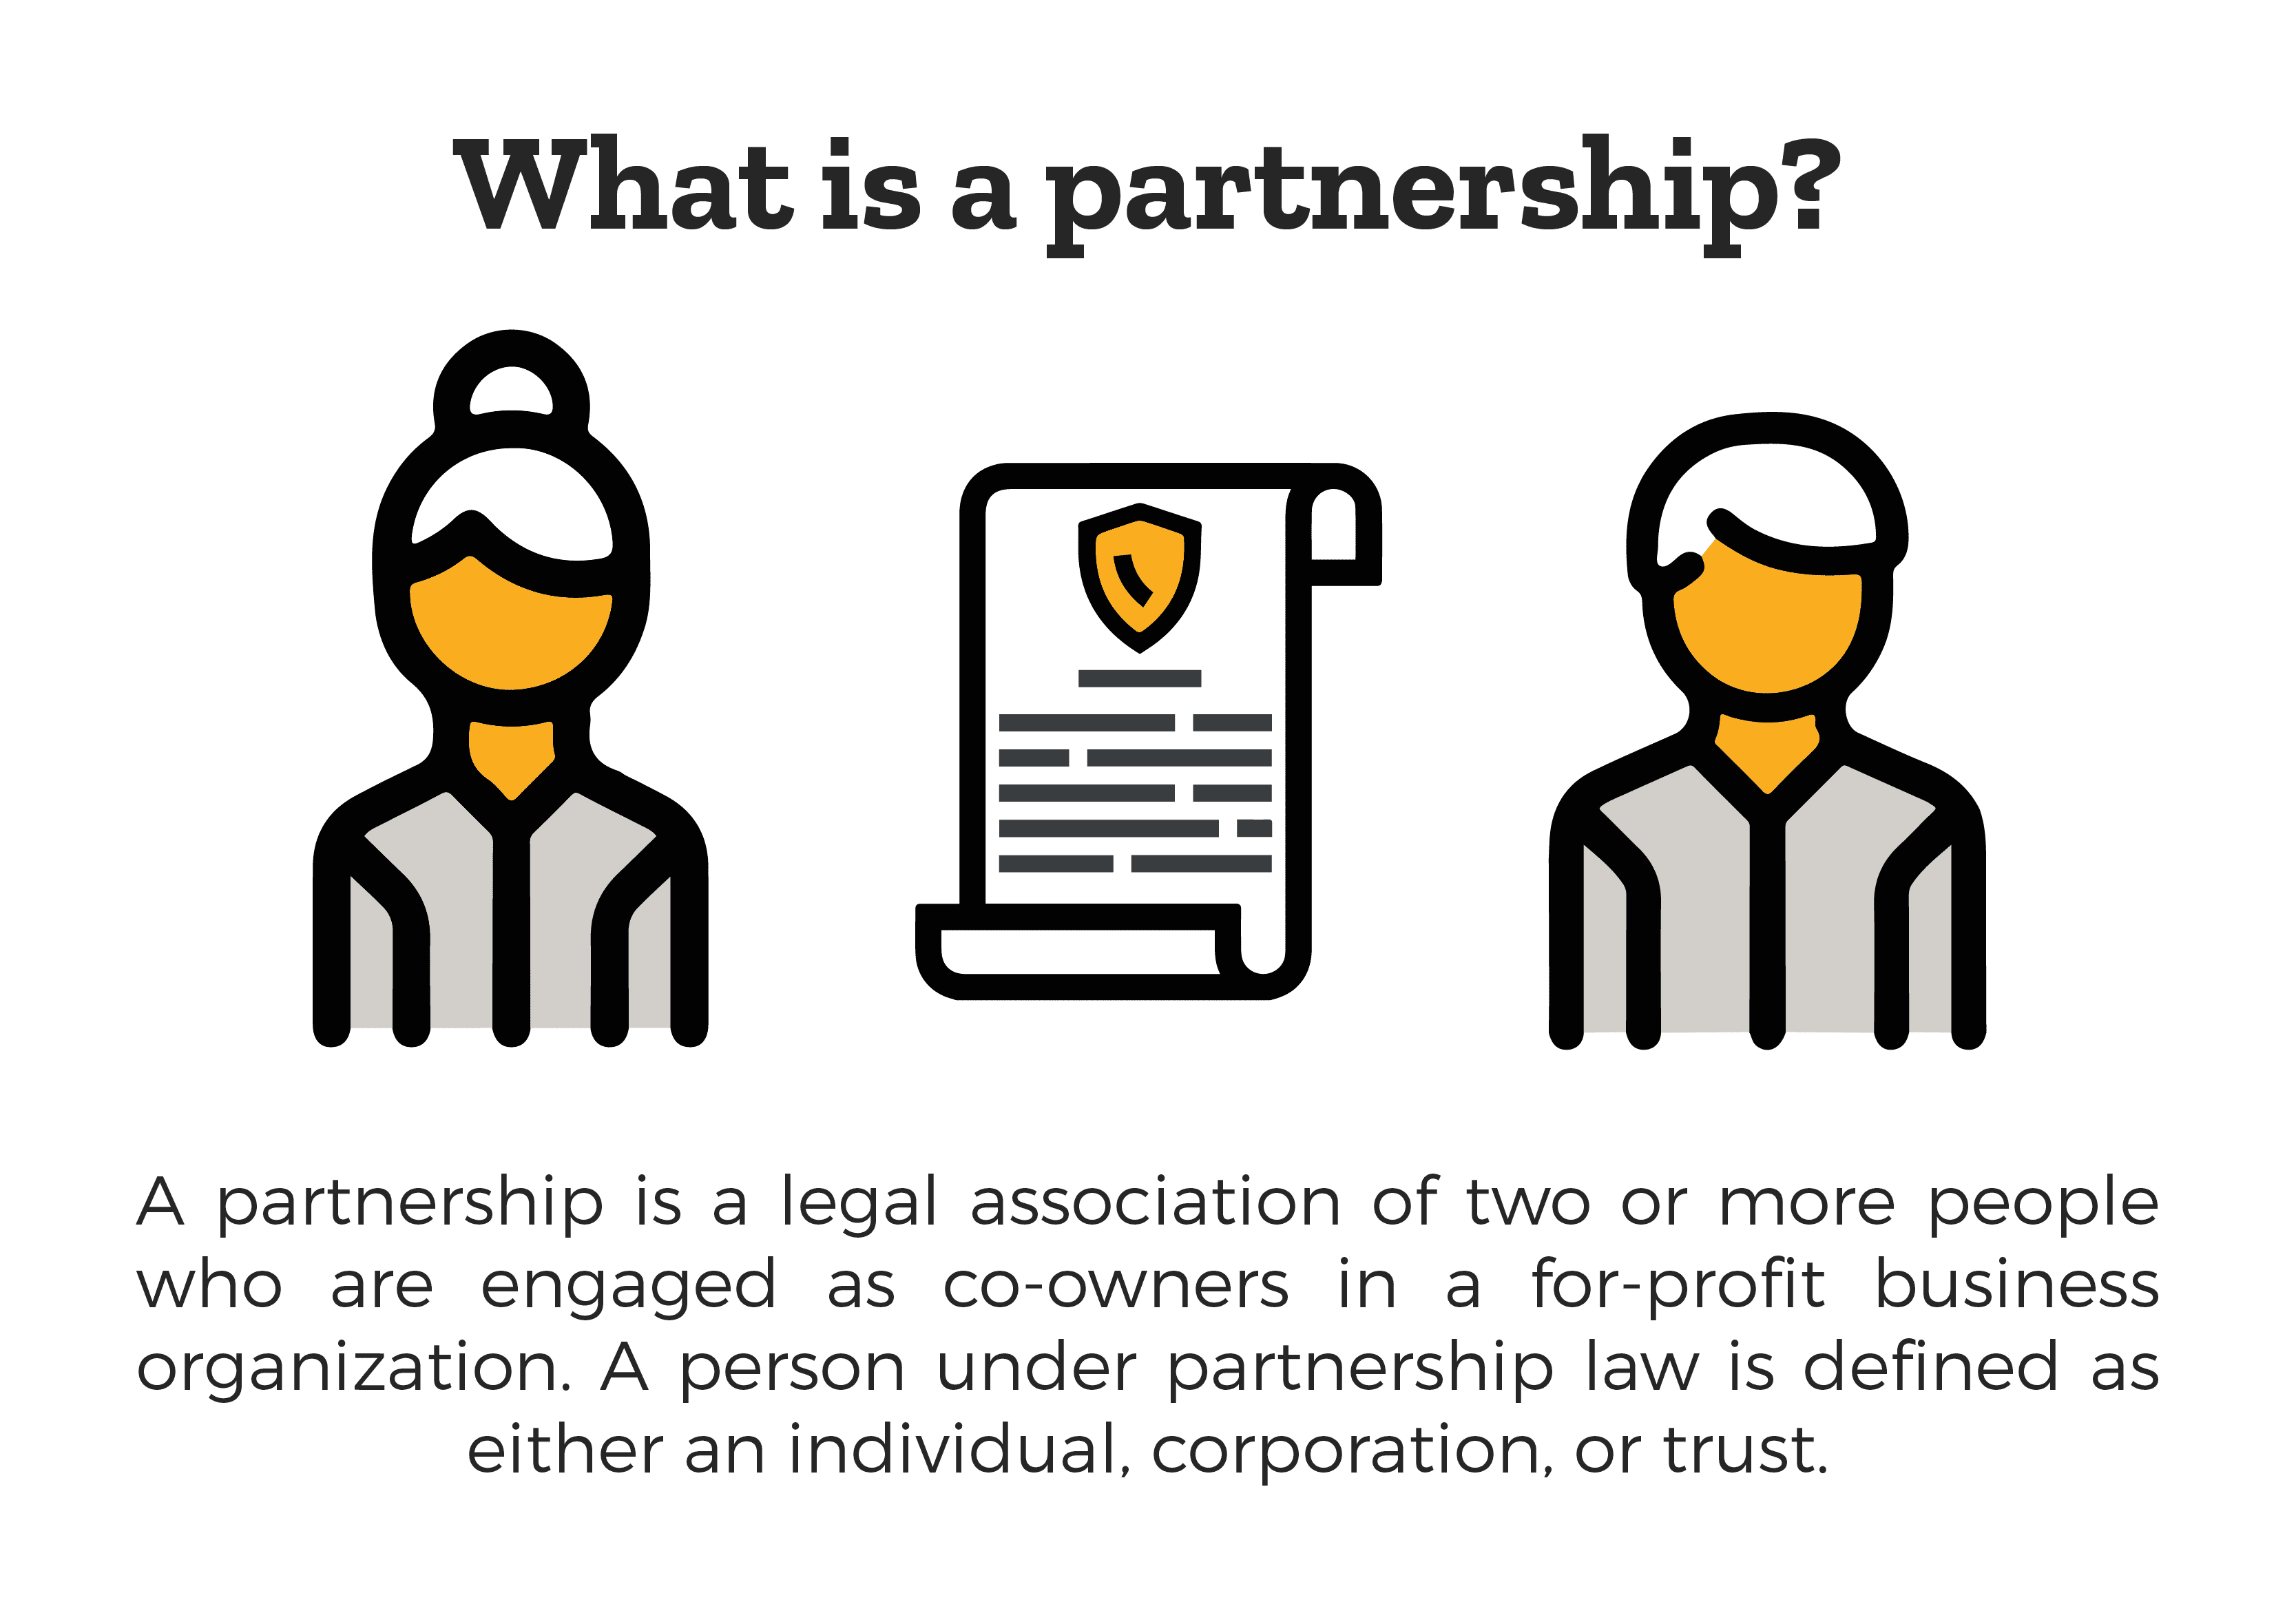 What Is a Business Partnership? - a business partnership is a legal association of two or more people who are engaged as co-owners in a for-profit business organization. A person under business partnership law is defined as either an individual, corporation, or trust.